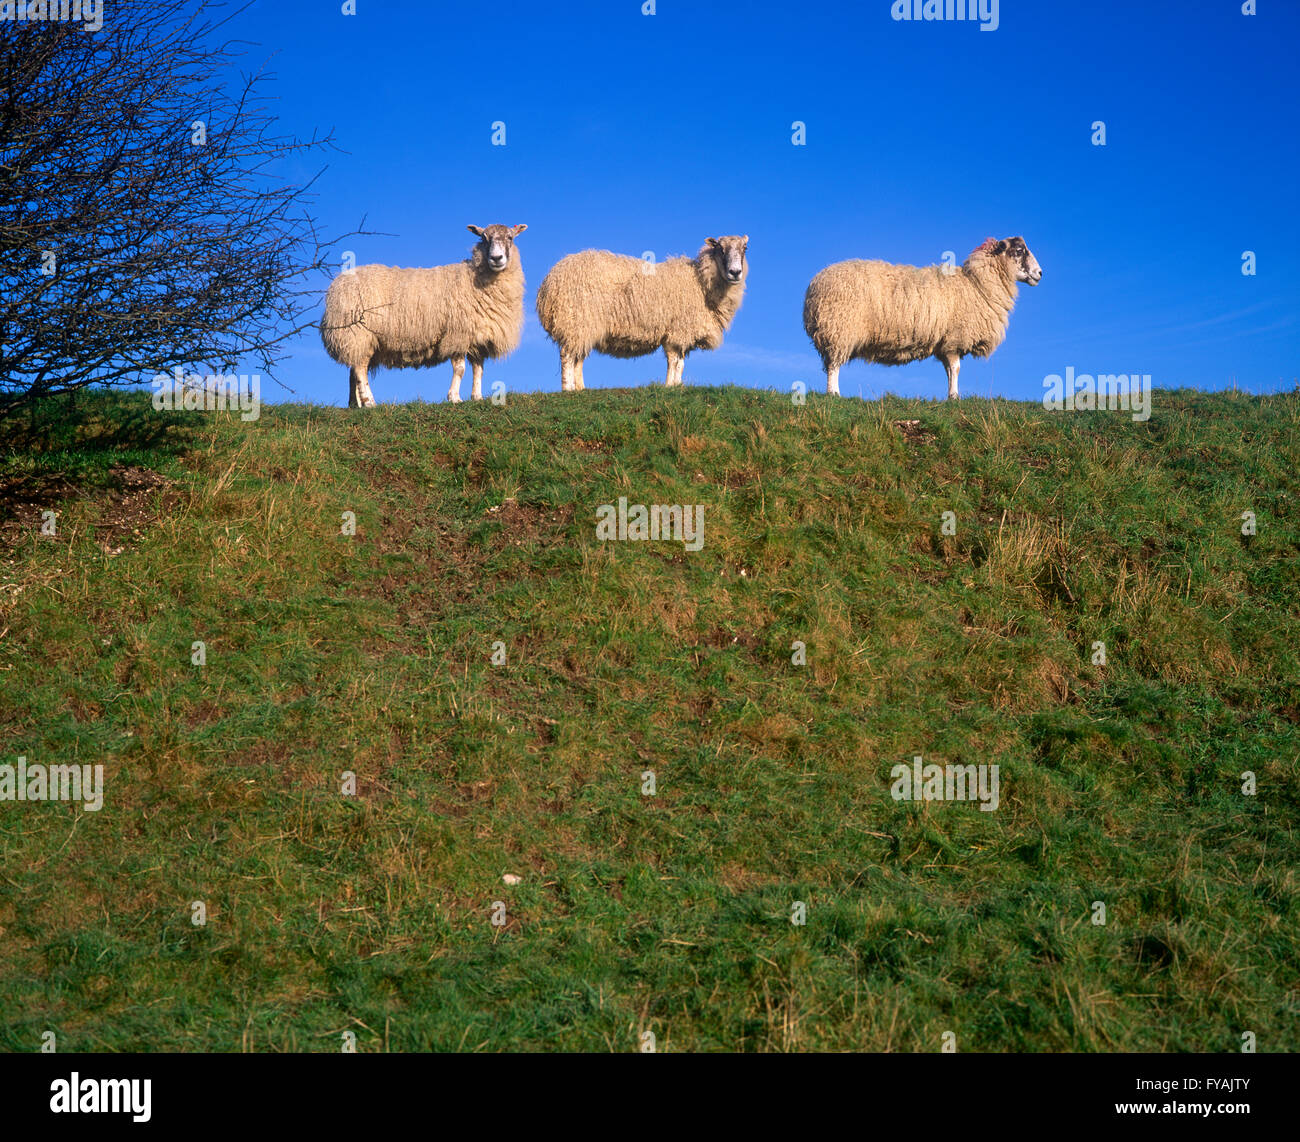 Three sheep standing in a line on a hill, outside. - Stock Image